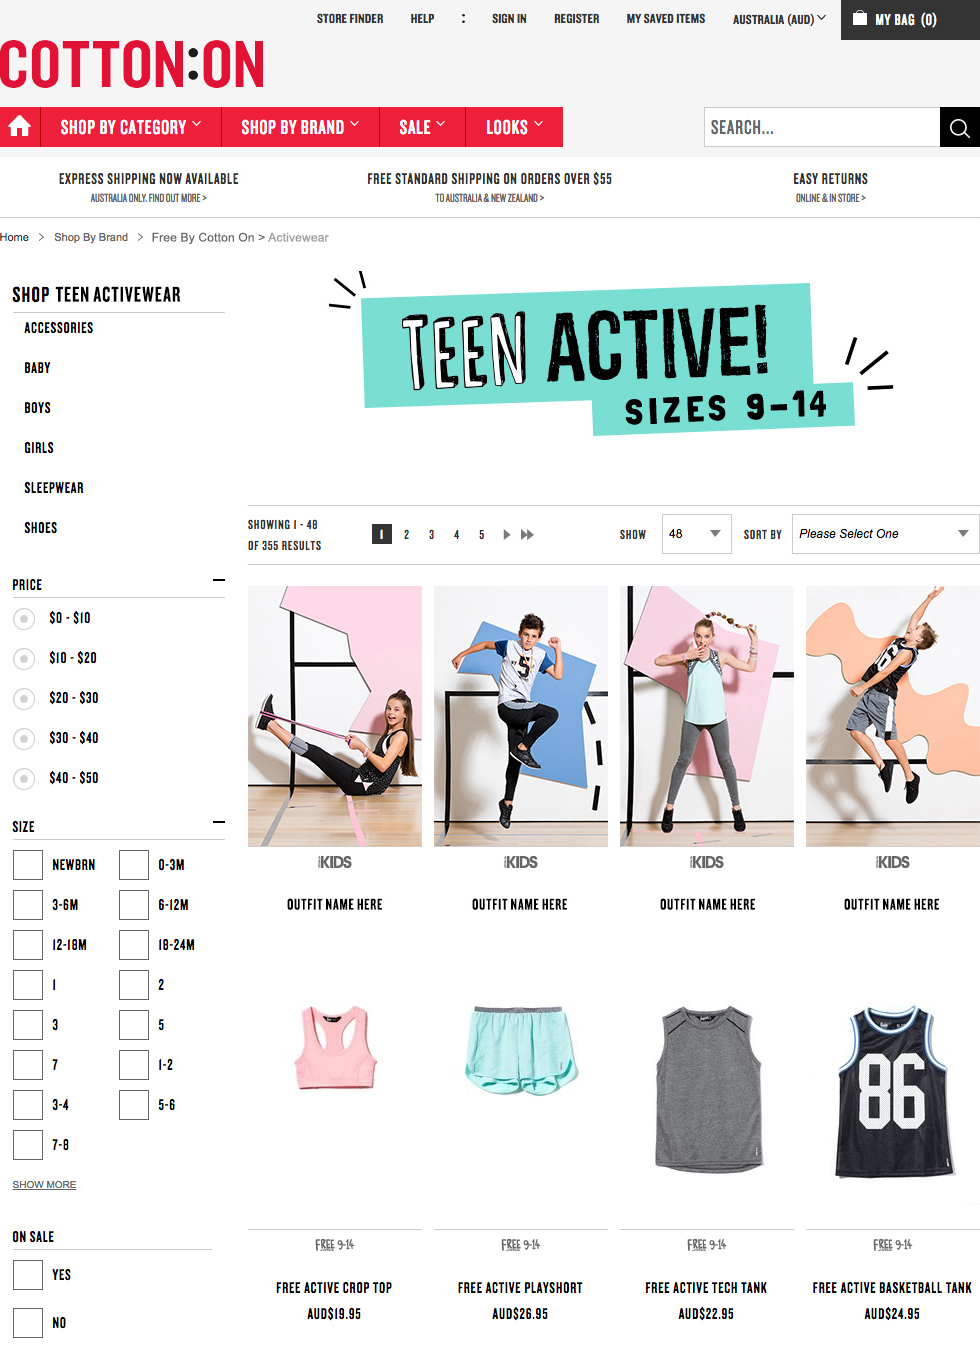 FREE-PRODUCTSET-LOOKBOOK-17AUG-ACTIVE-AU-V1-MOCKUP-2-2